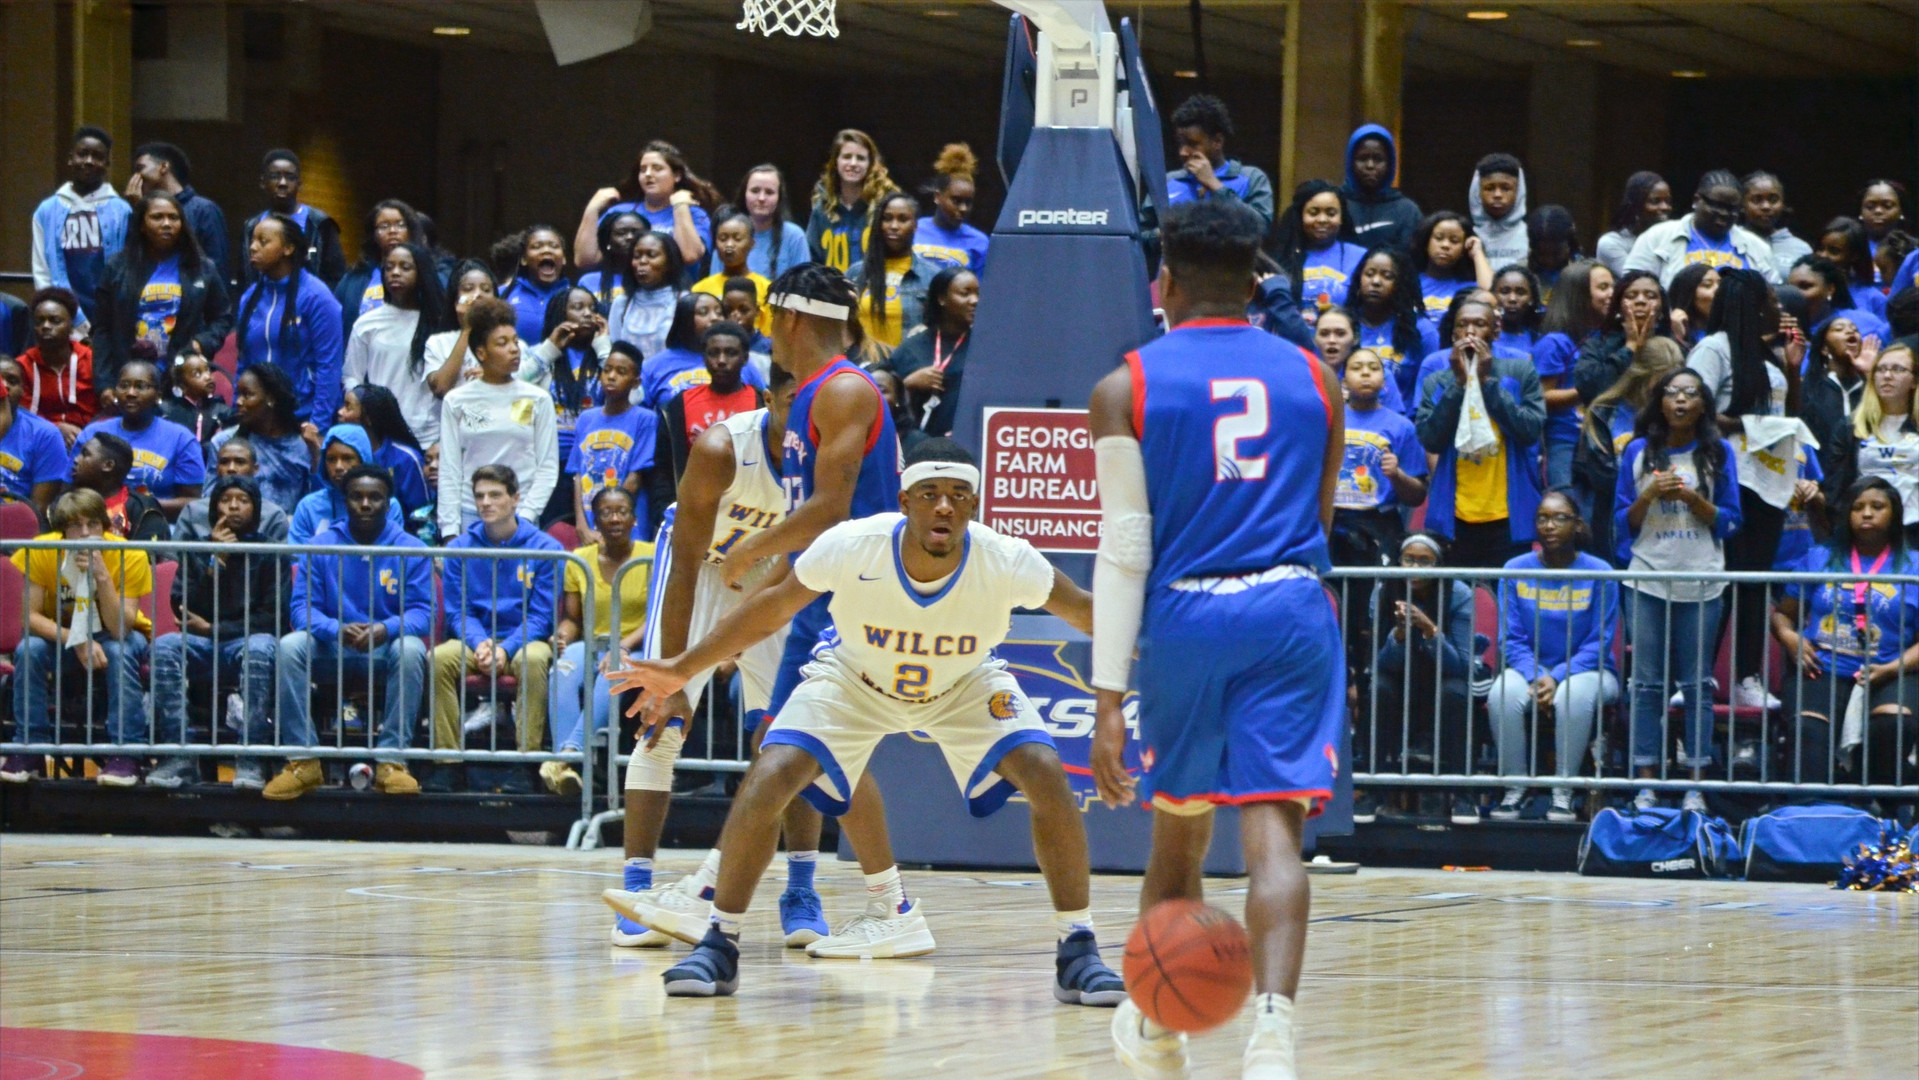 Wilkinson County's Brandon Mays guards Daveaun Coglin, of the Montgomery County Eagles, during the 2018 Class-A Public State Finals at the Macon Coliseum. The Warriors held off a late MoCo rally in the back-and-forth game and hung on to win their third-consecutive state championship, also the program's 10th all-time.